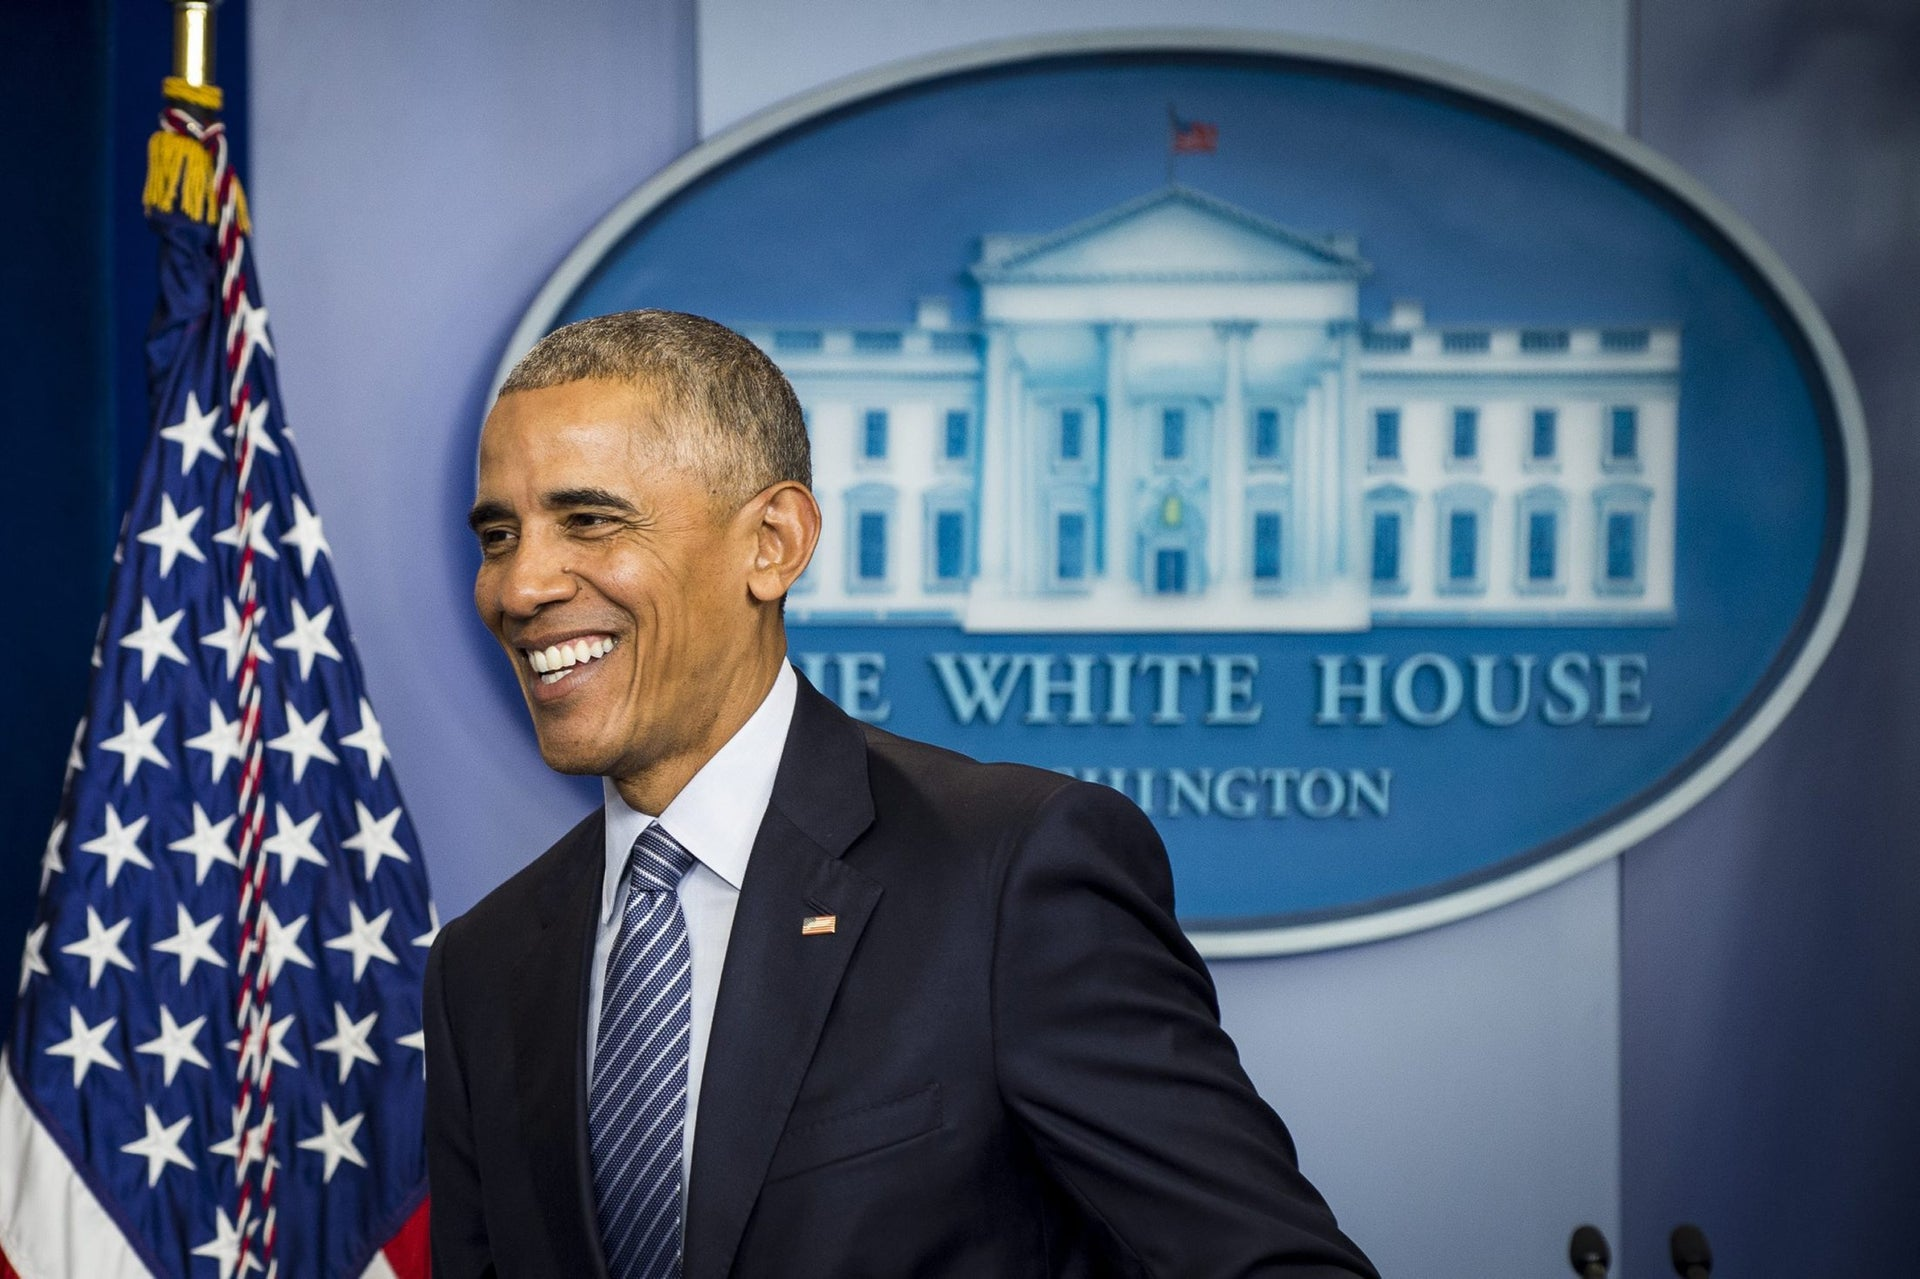 U.S. President Barack Obama smiles during a press conference at the White House briefing room in Washington, D.C., U.S., on Monday, Nov. 14, 2016. Obama said he doubts President-elect Donald Trump will scrap a deal with Iran to curtail the country's nuclear weapons aspirations because the agreement is working. Photographer: Pete Marovich/Bloomberg